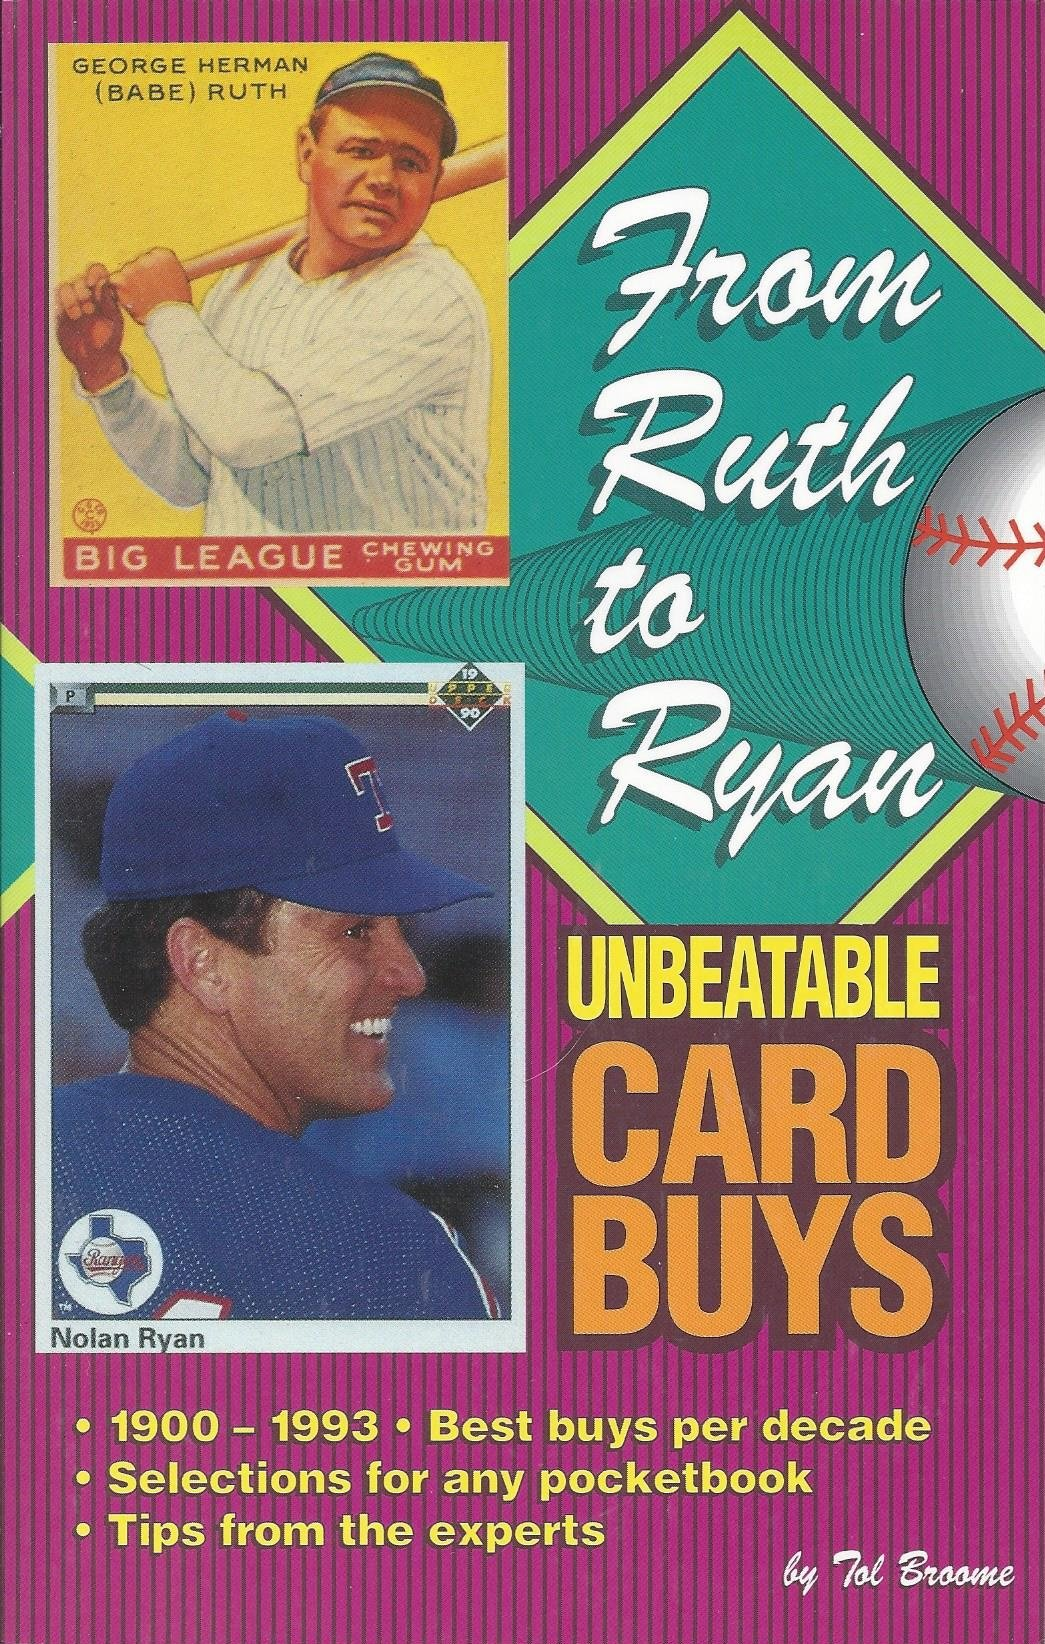 From Ruth to Ryand: Unbeatable Card Buys